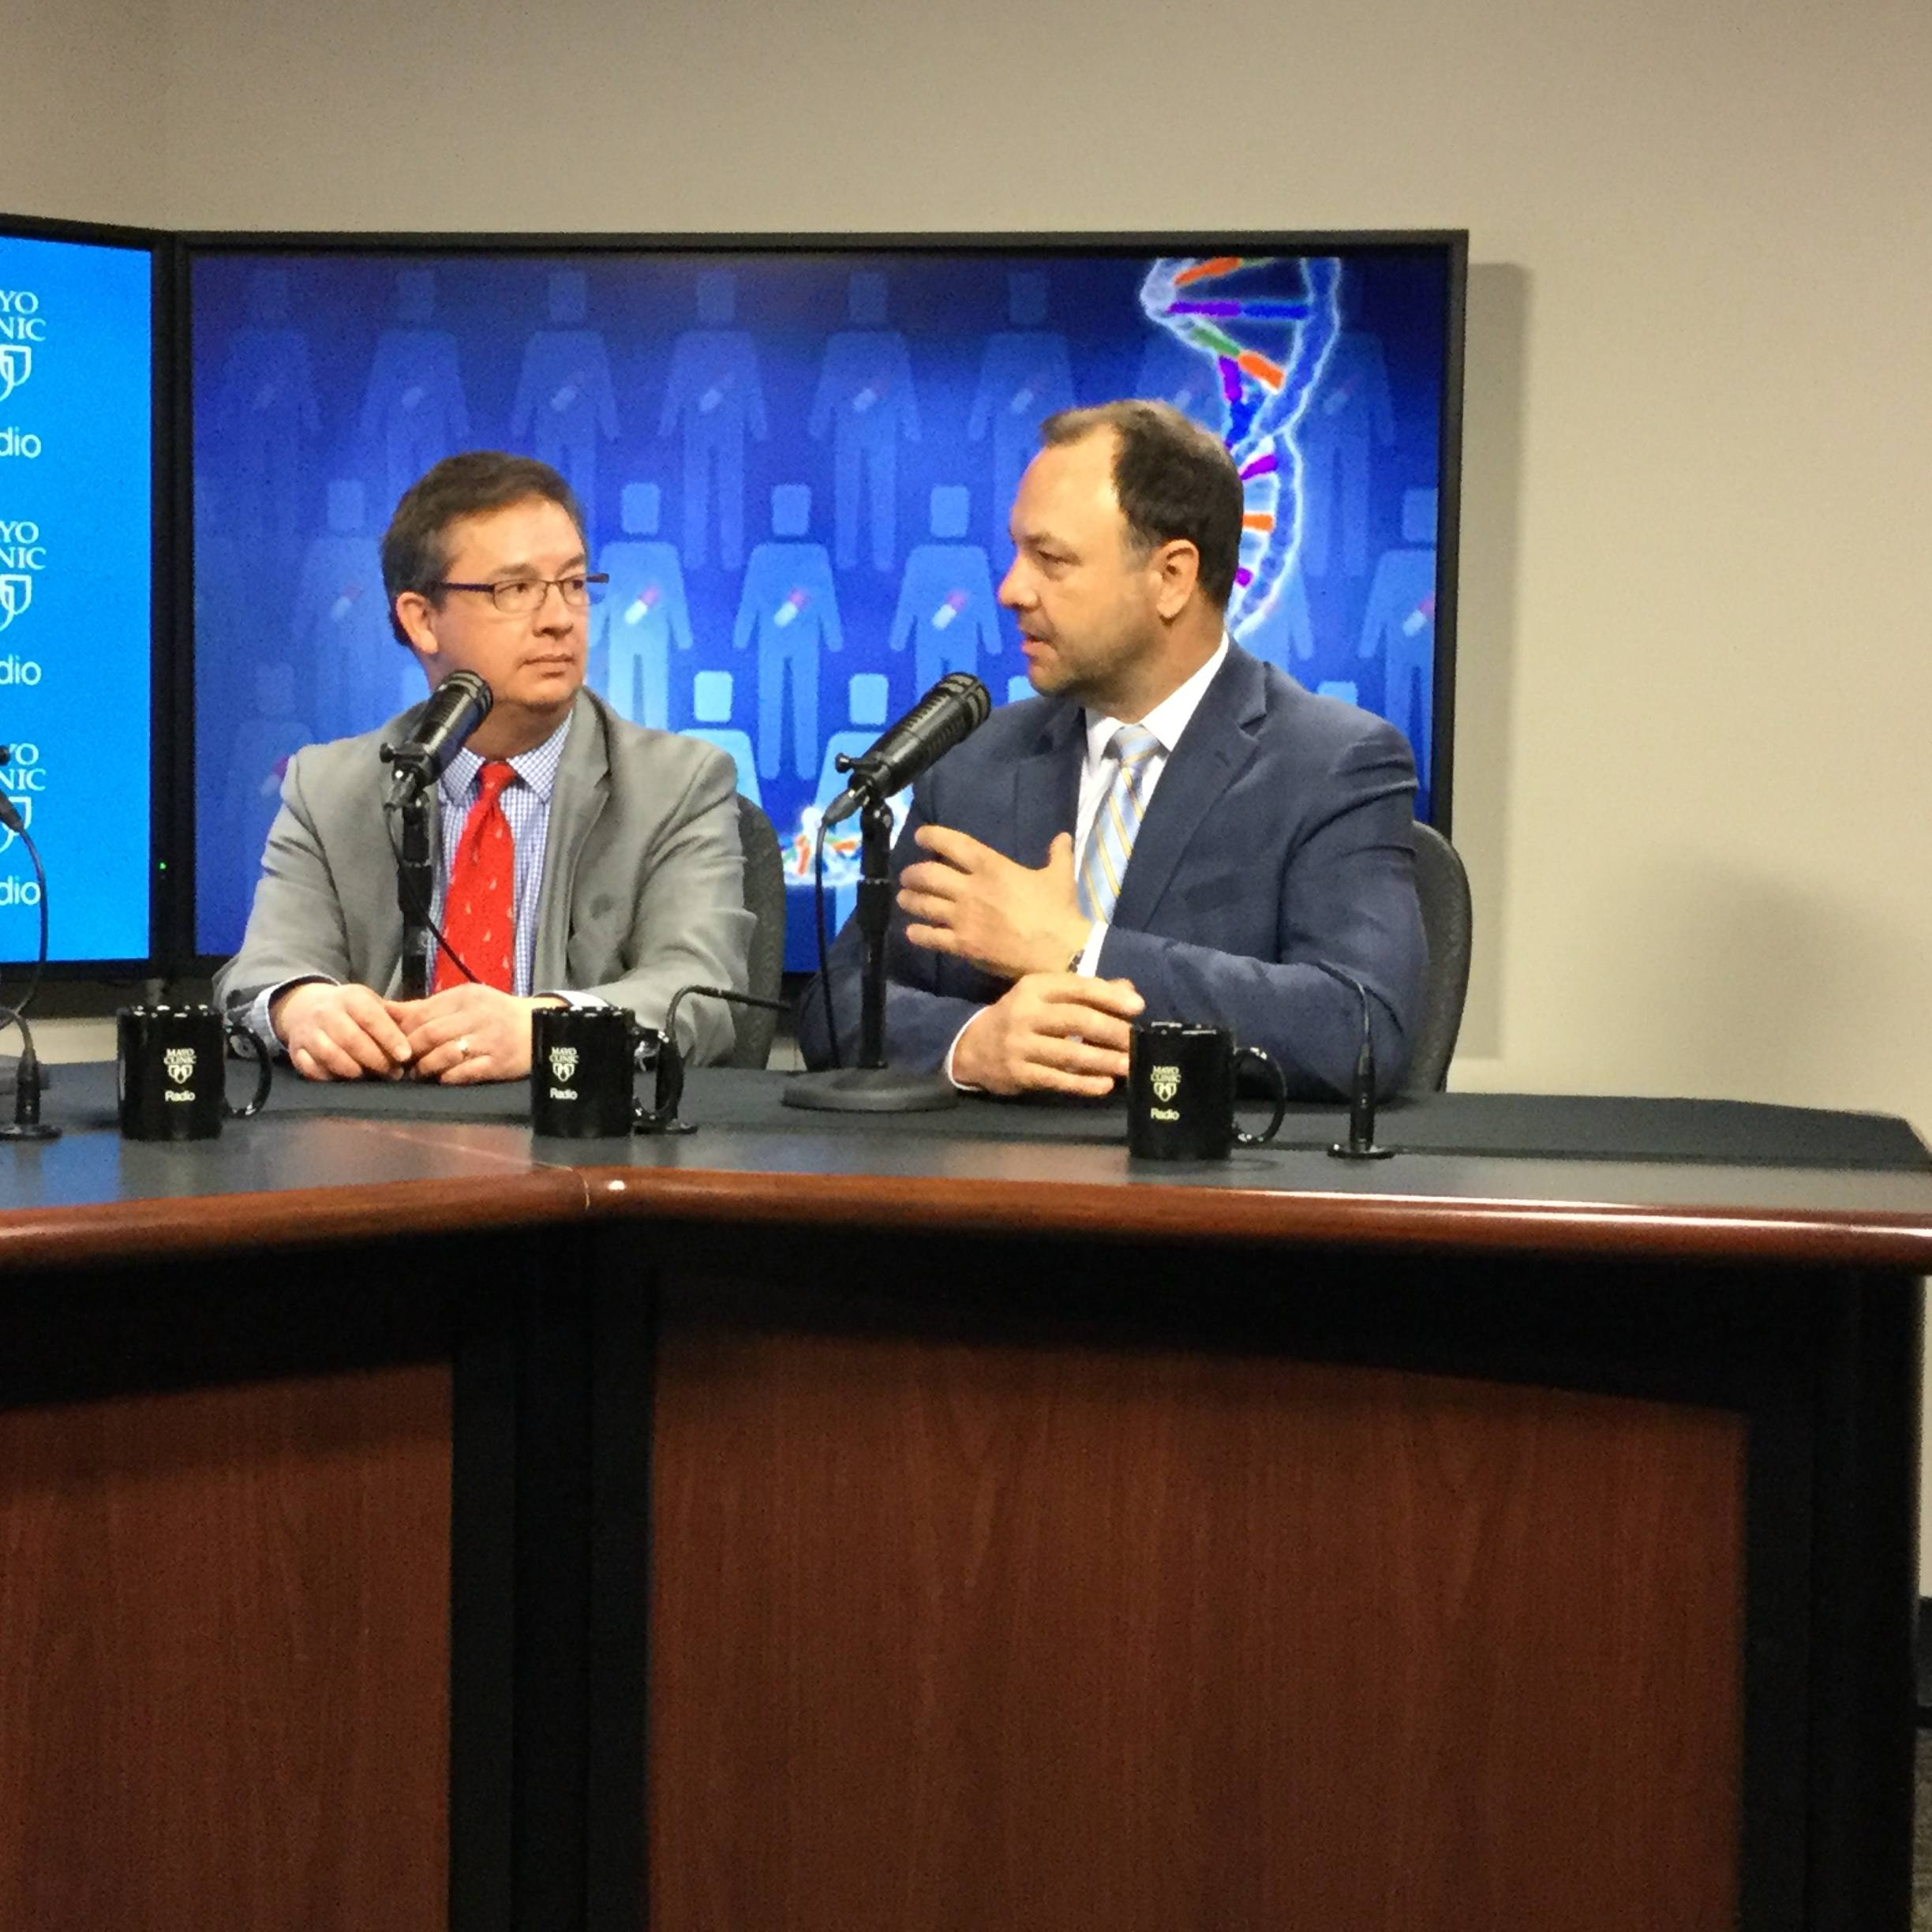 Dr. Timothy Curry and Dr. Michael Stephens being interviewed on Mayo Clinic Radio